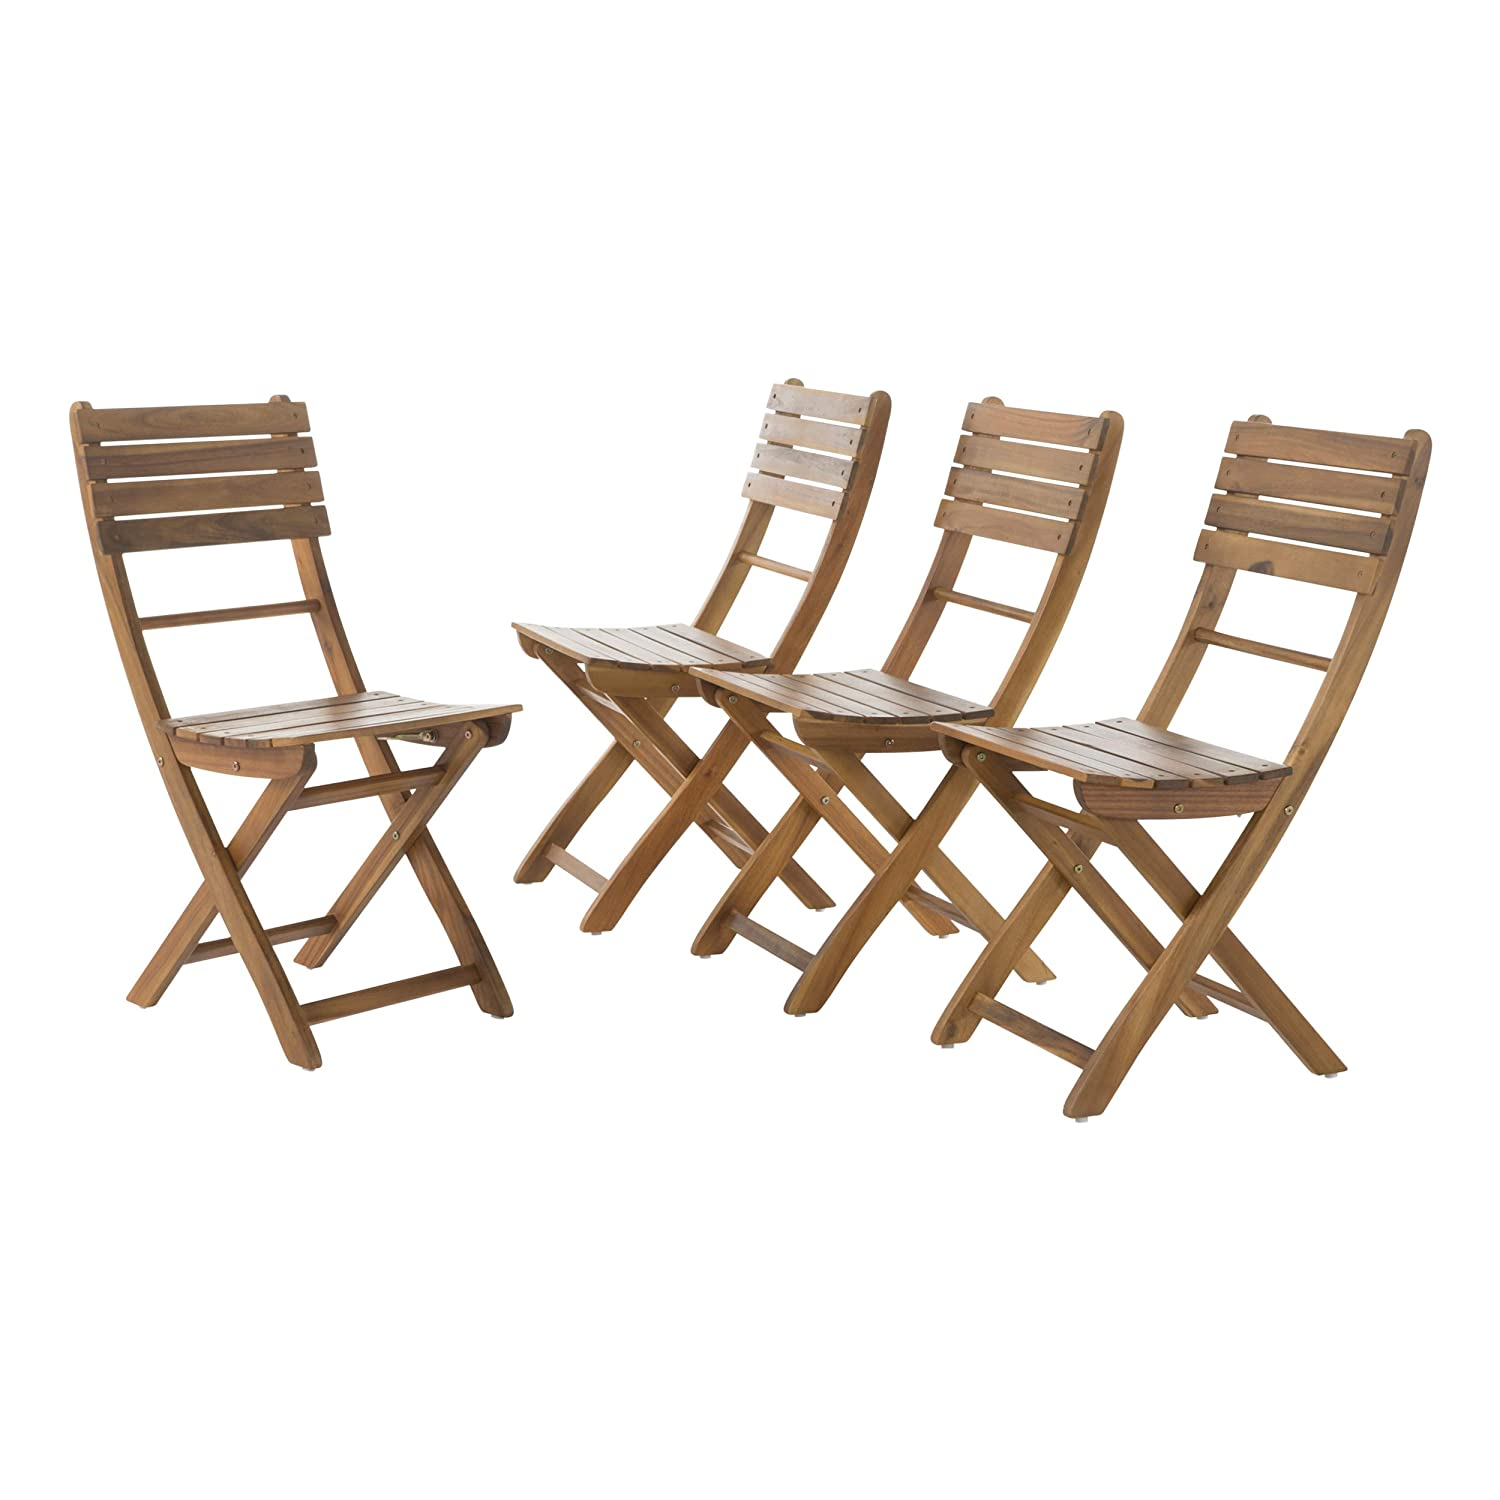 Amazon com gdf studio vicaro acacia wood foldable outdoor dining chairs set of 4 perfect for patio with natural finish garden outdoor